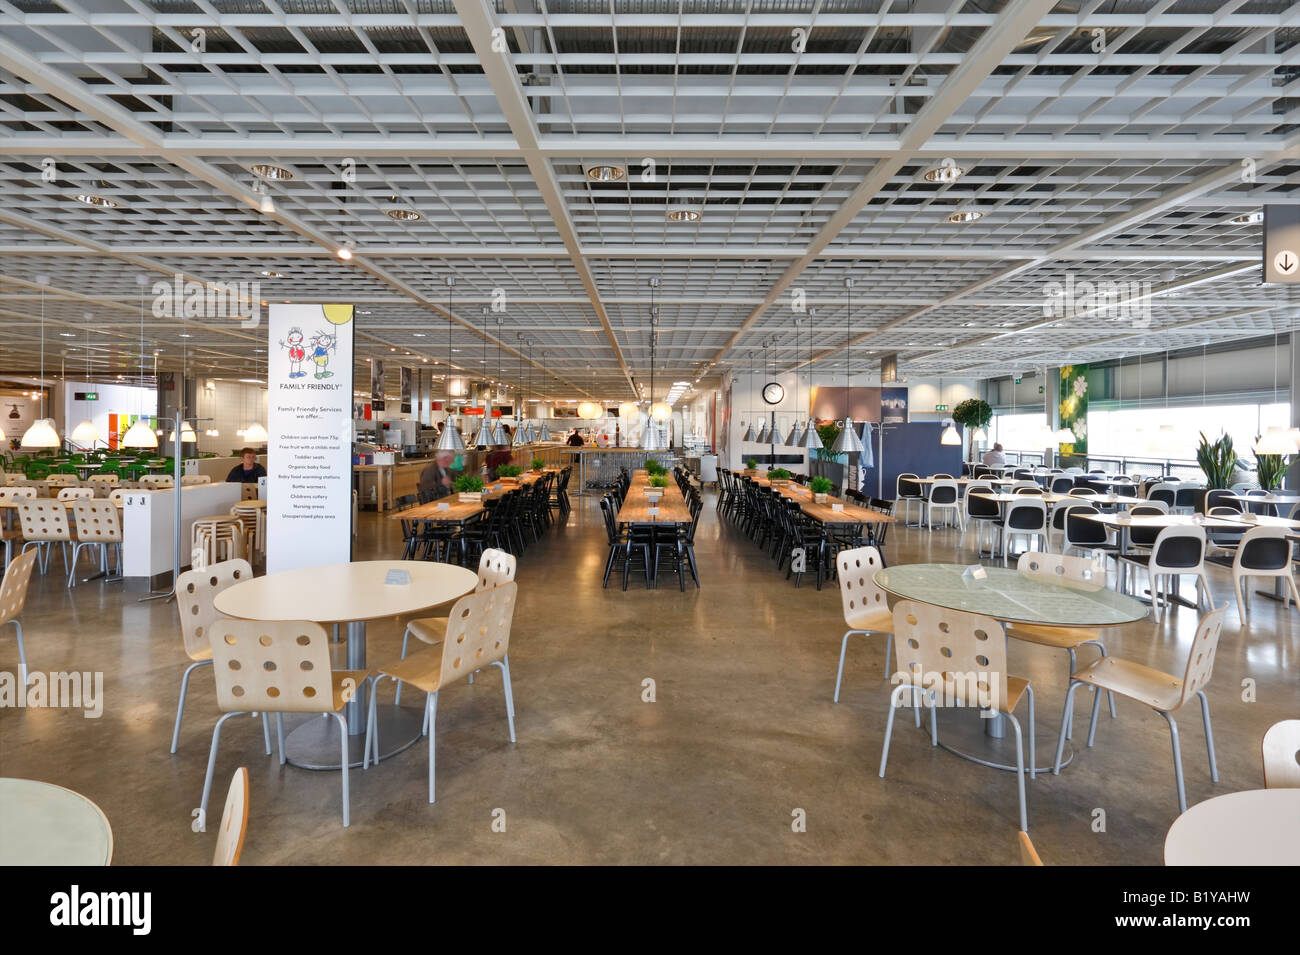 ikea restaurant stock photos ikea restaurant stock images alamy. Black Bedroom Furniture Sets. Home Design Ideas